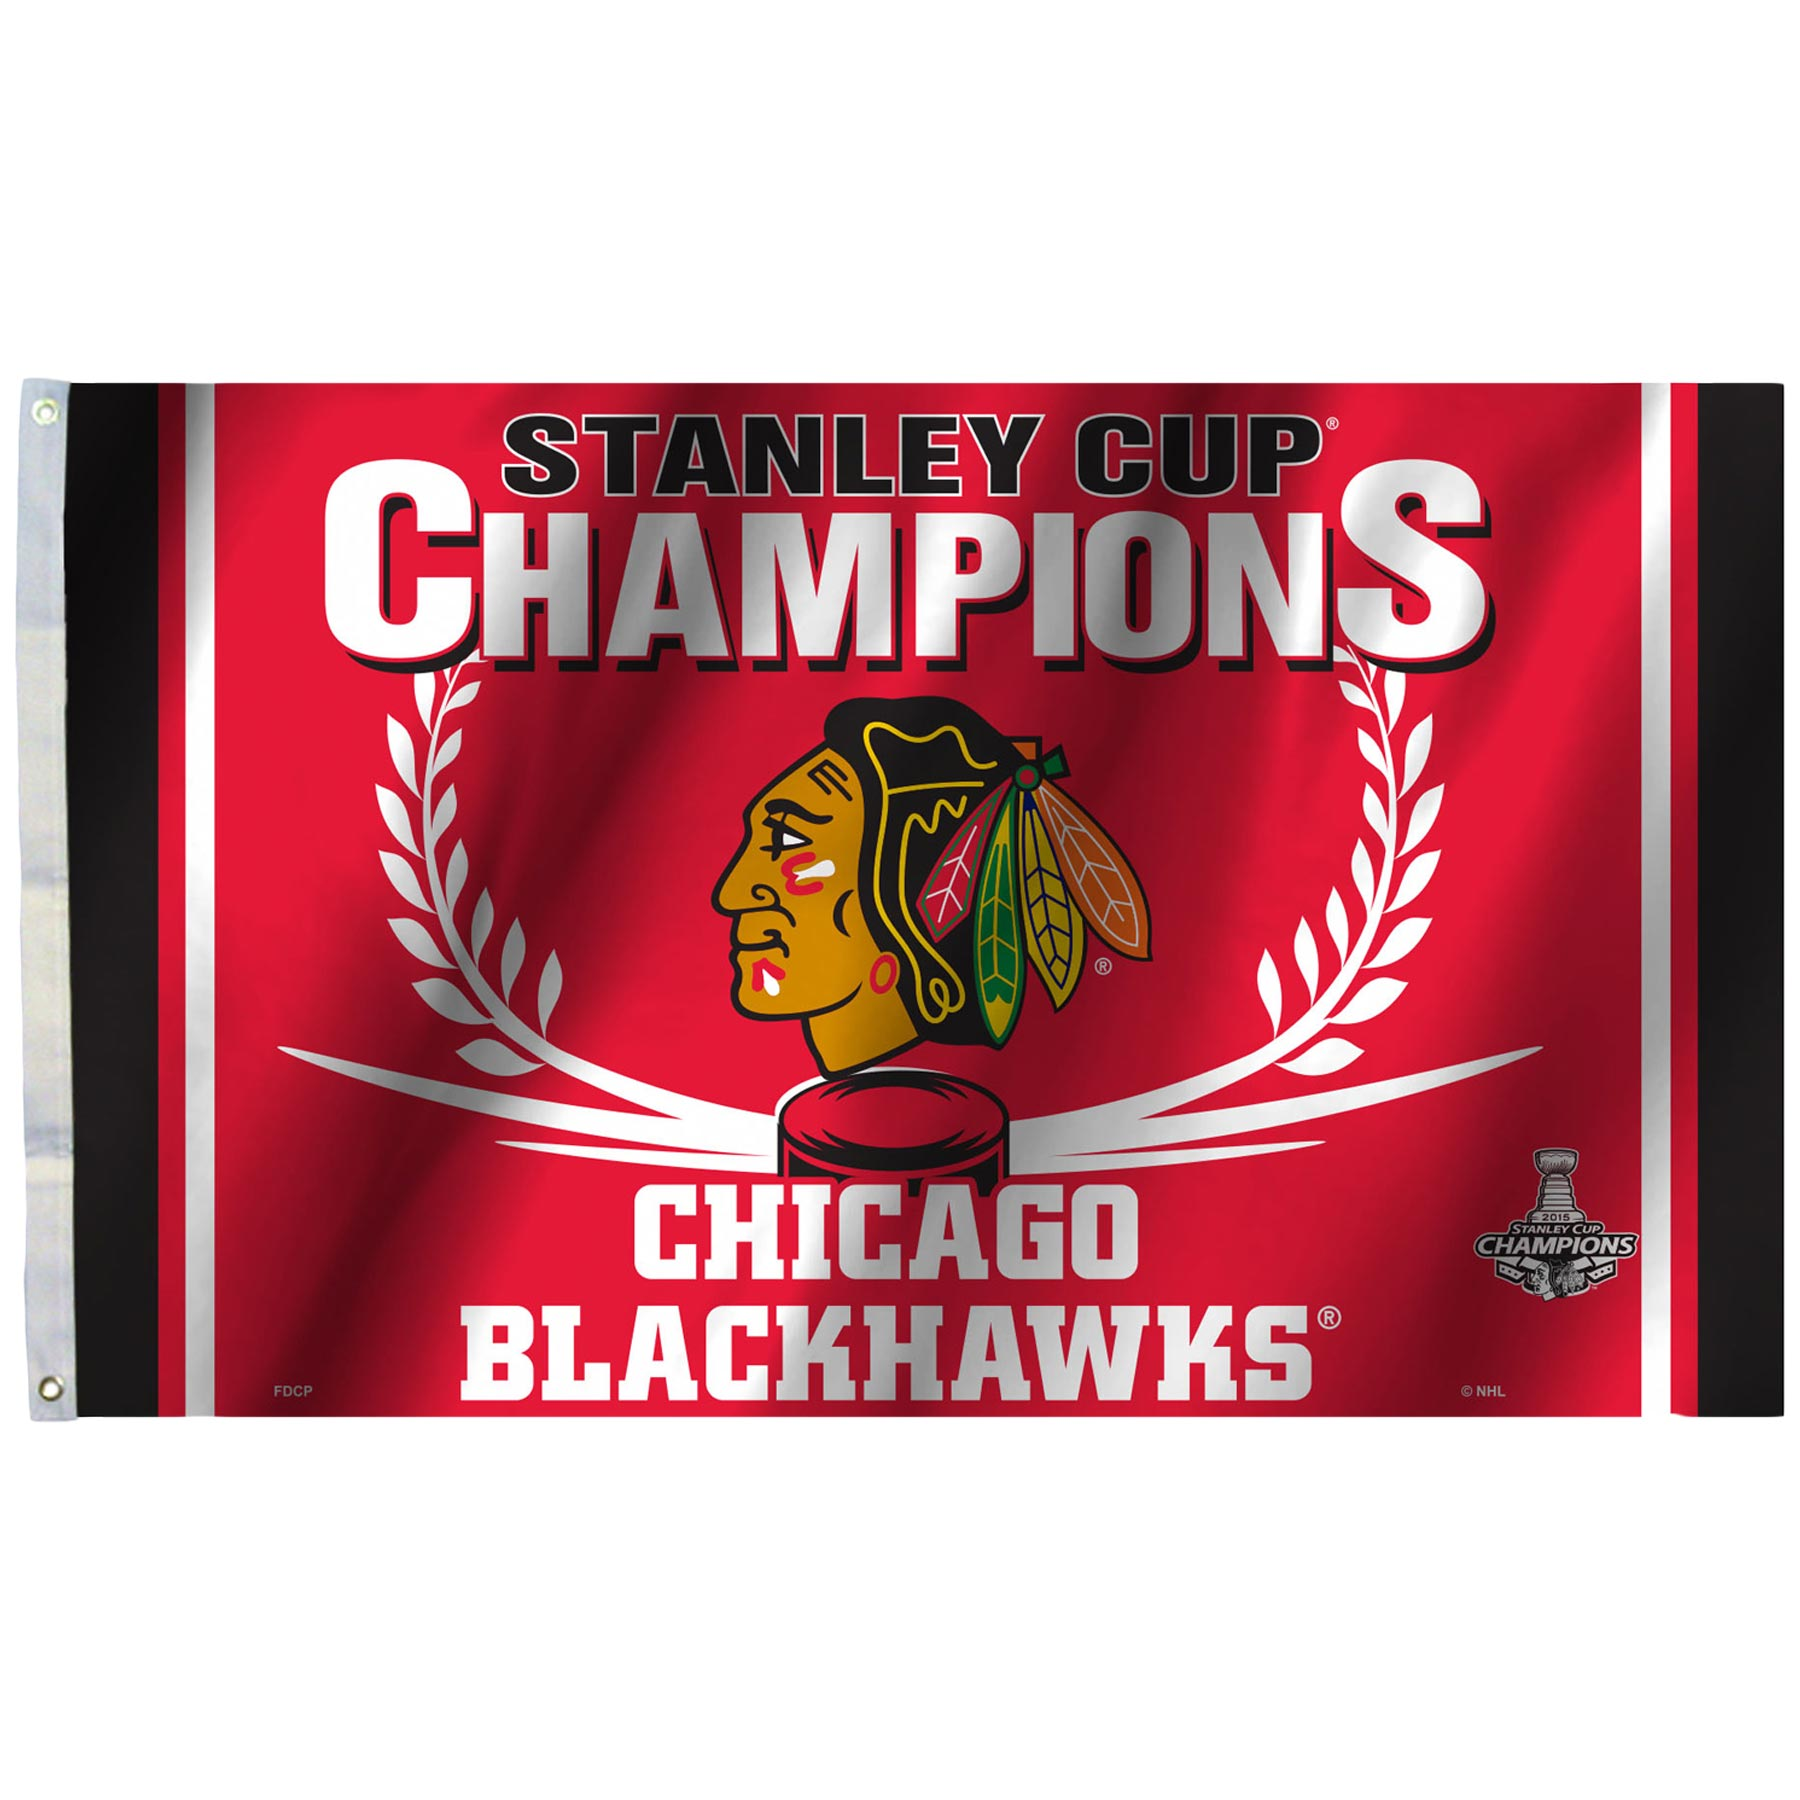 Chicago Blackhawks 2015 Stanley Cup Champions 3ft X 5ft Flag 1800x1800